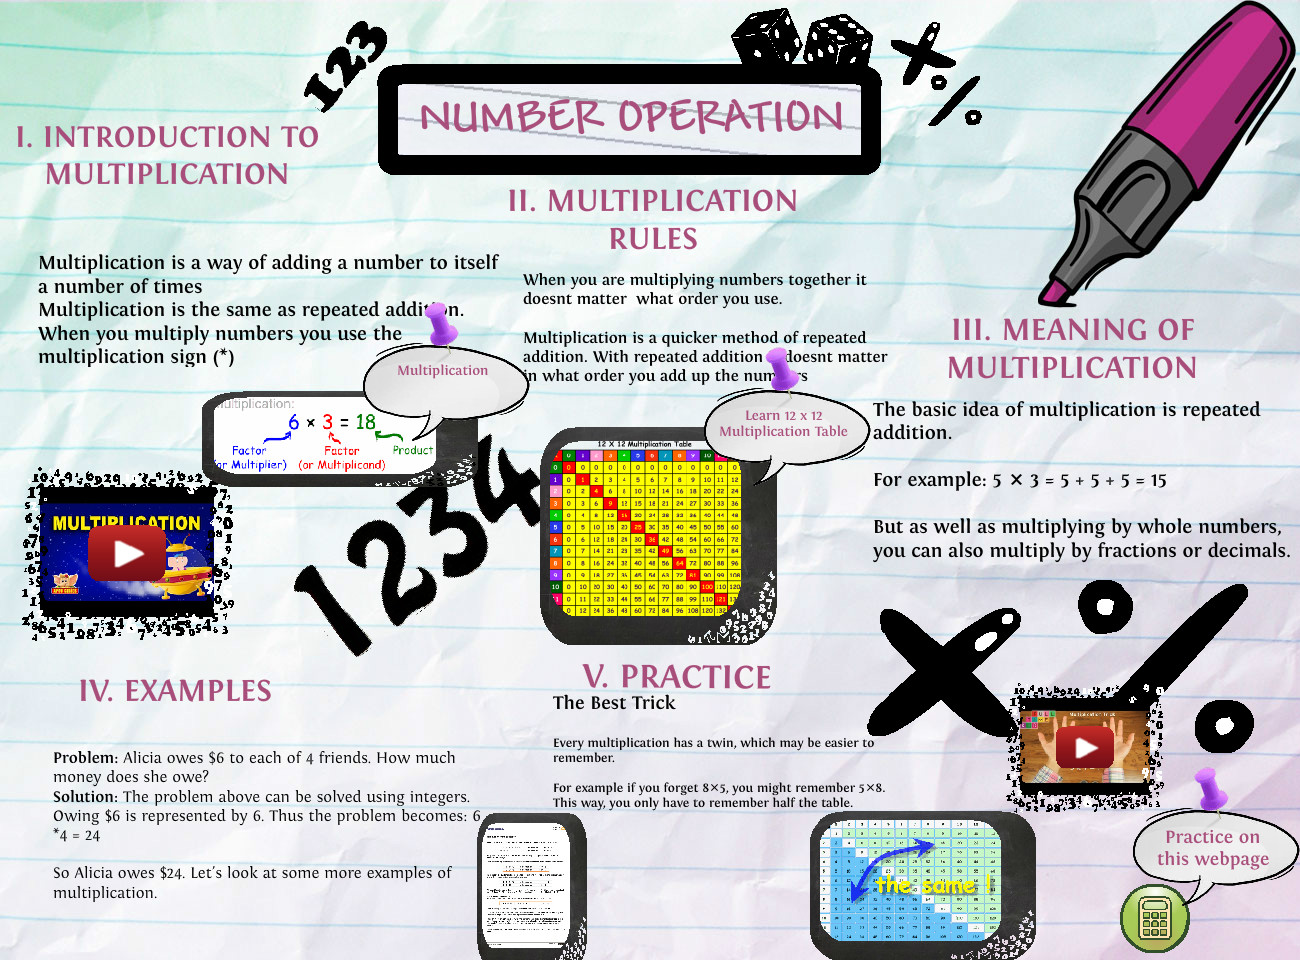 Number operation